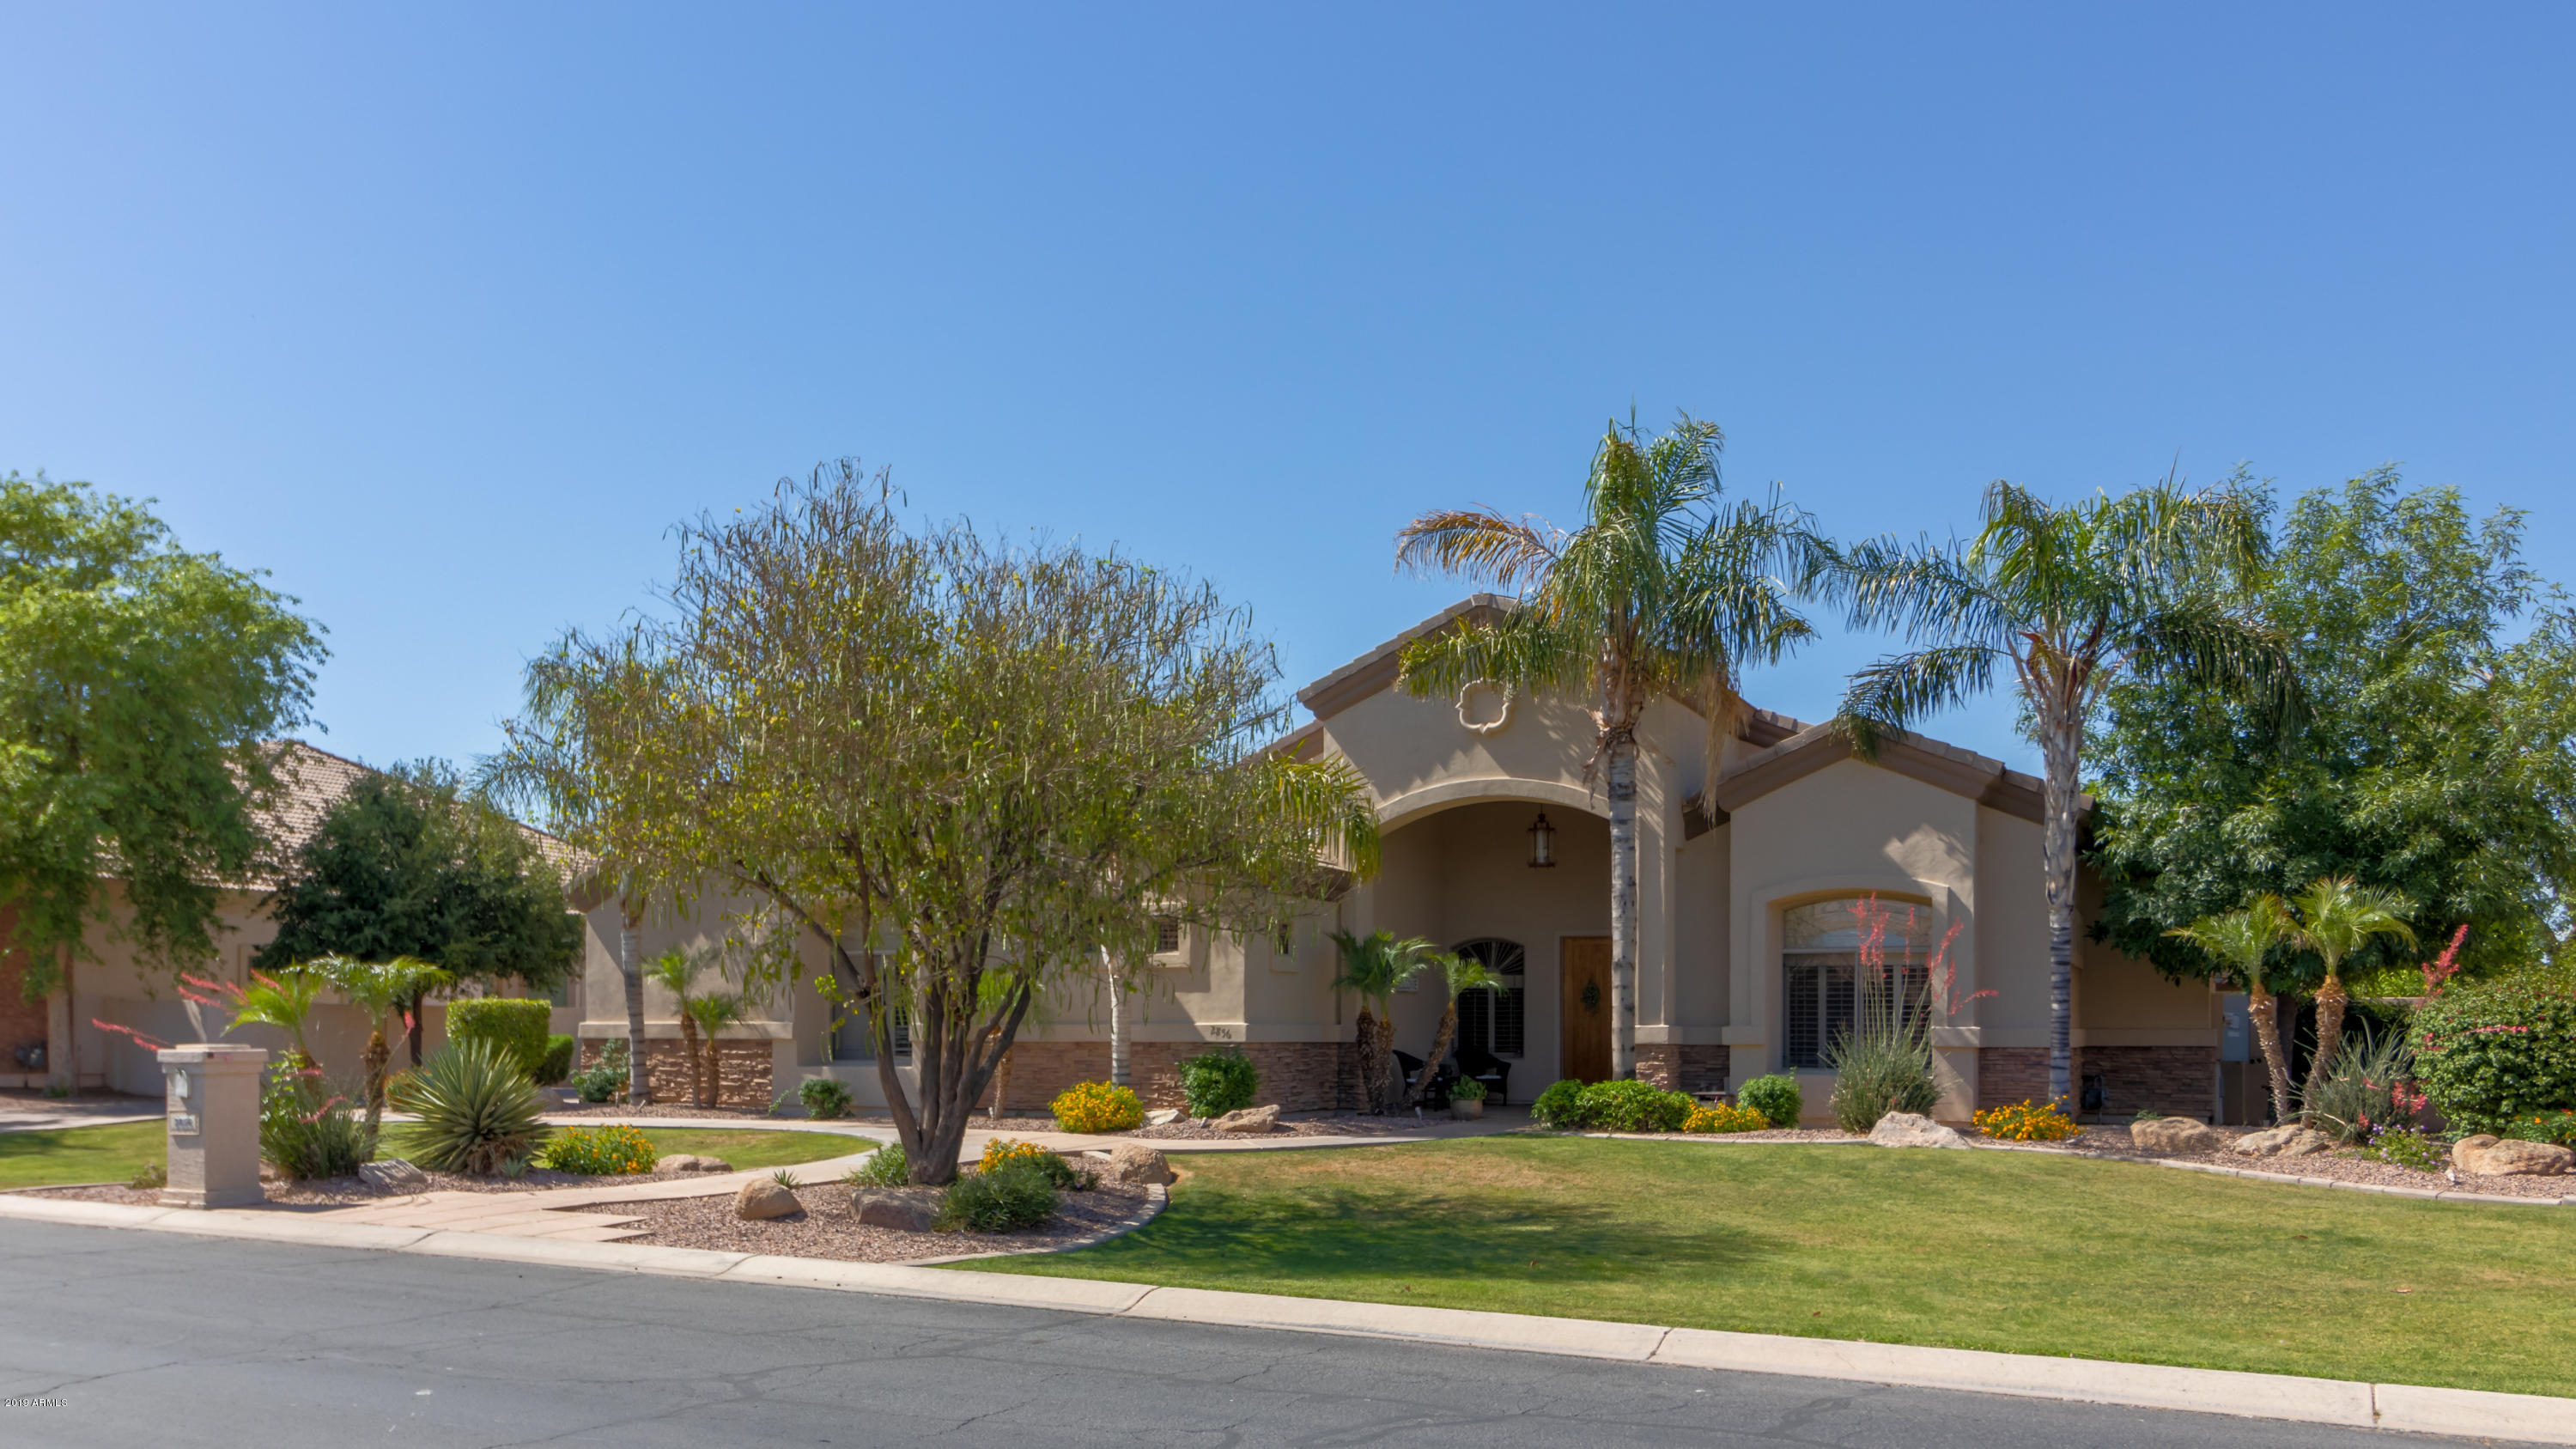 2856 E WATERMAN Court, Gilbert AZ 85297